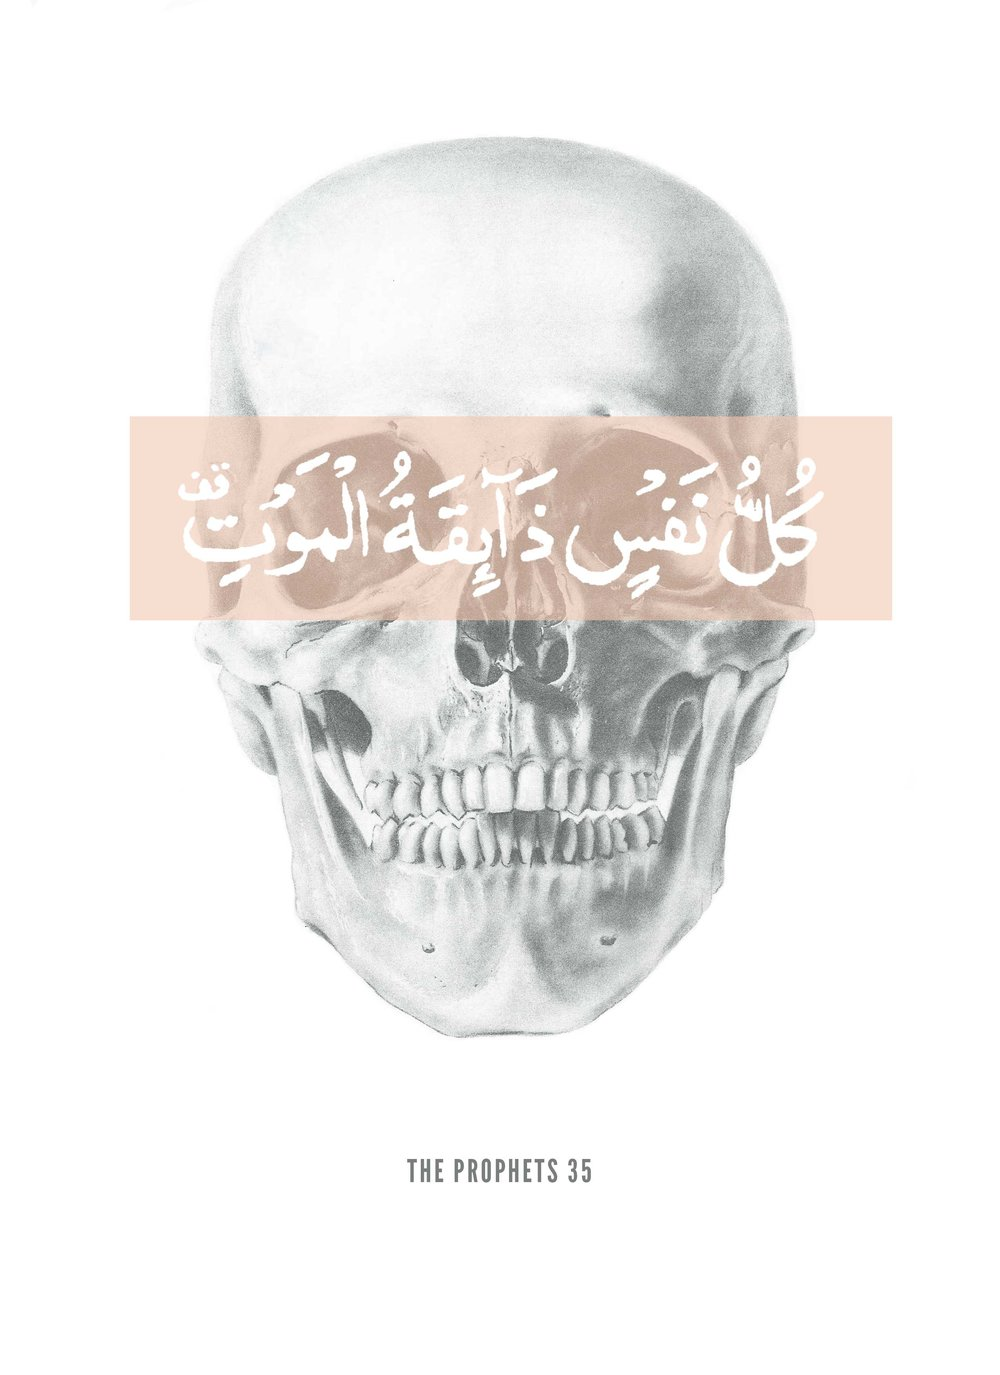 tahsin the good the prophets 35 print.png